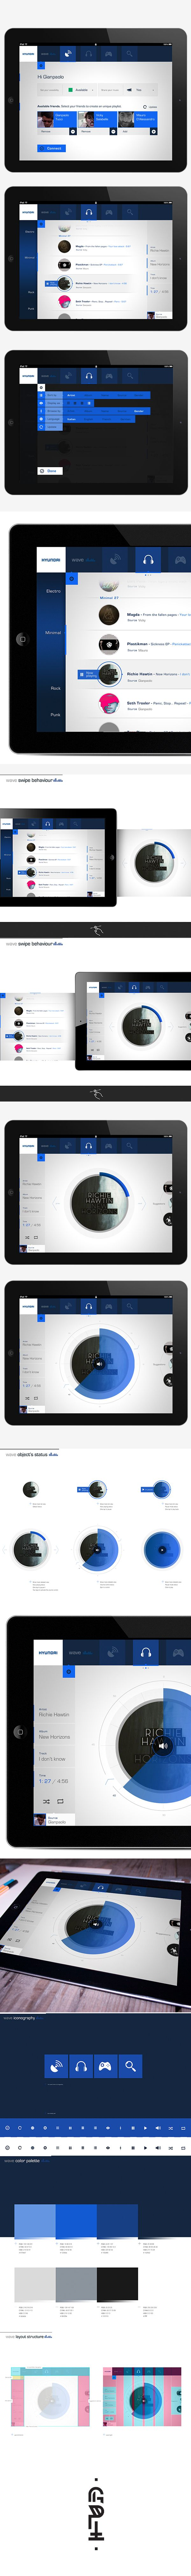 wave ||||  iPad application by Gianpaolo Tucci